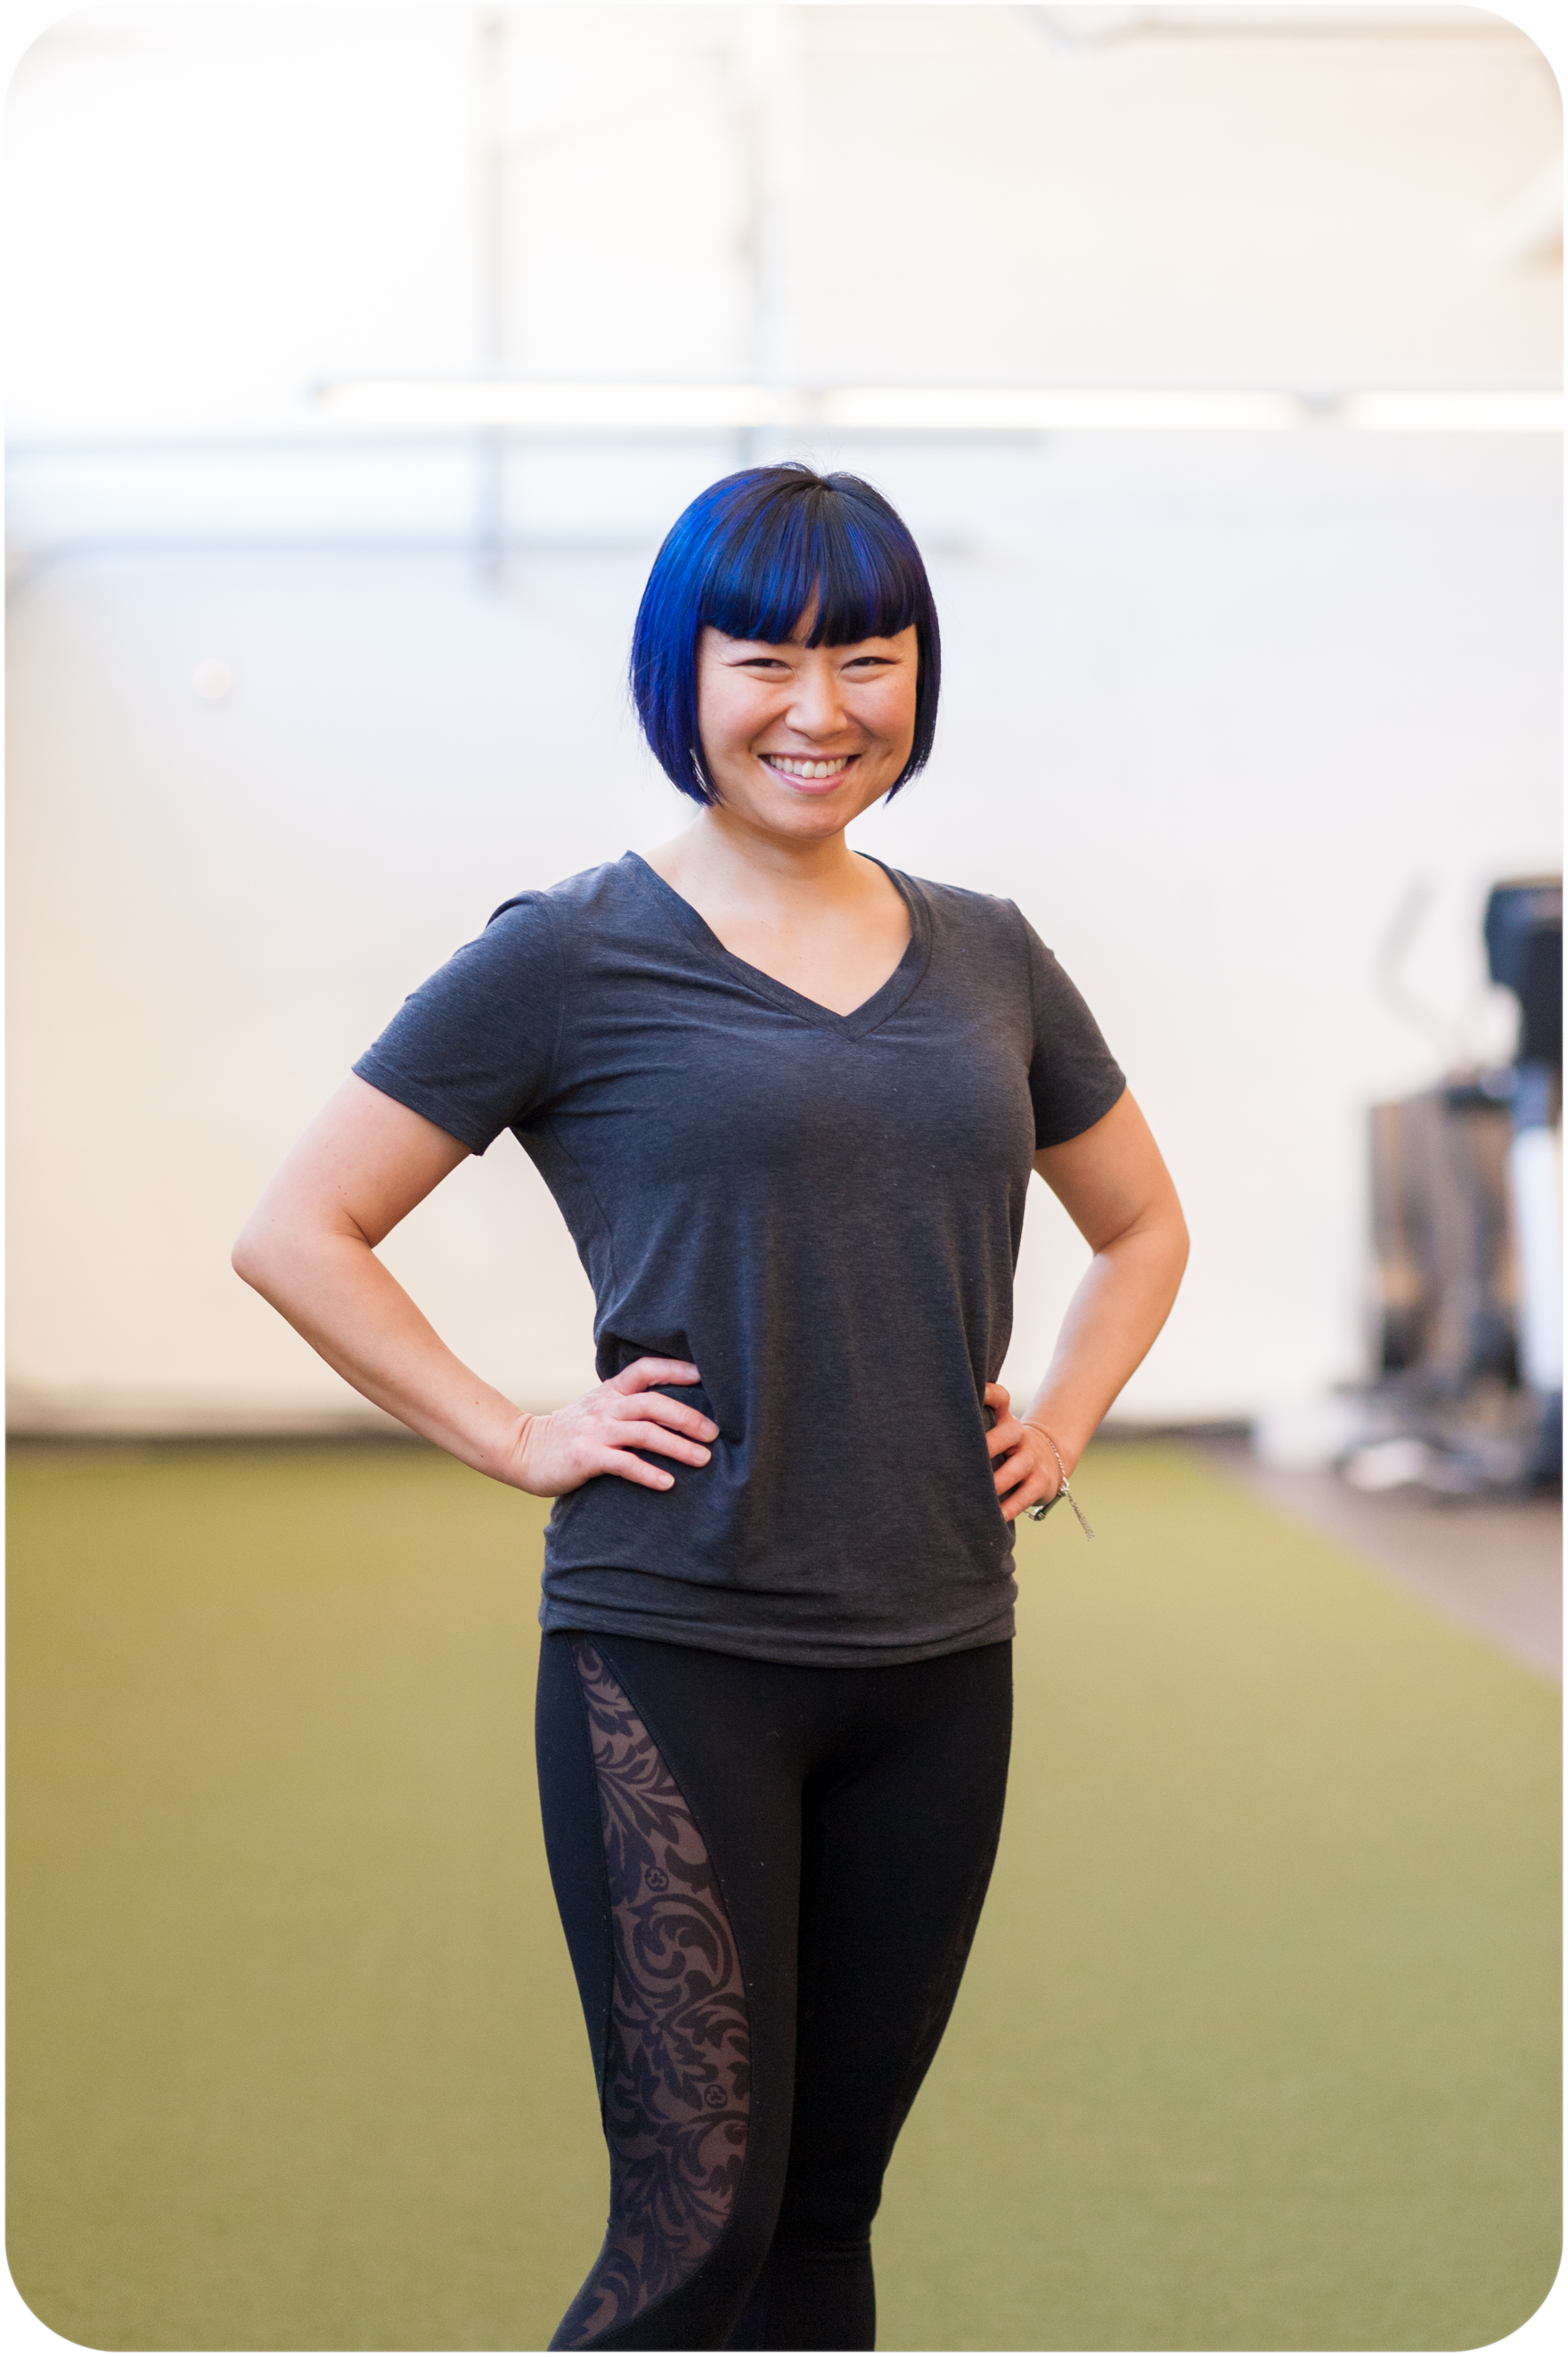 006_BodySoul_Trainer_Mina_March 19, 2018-Rounded.jpg